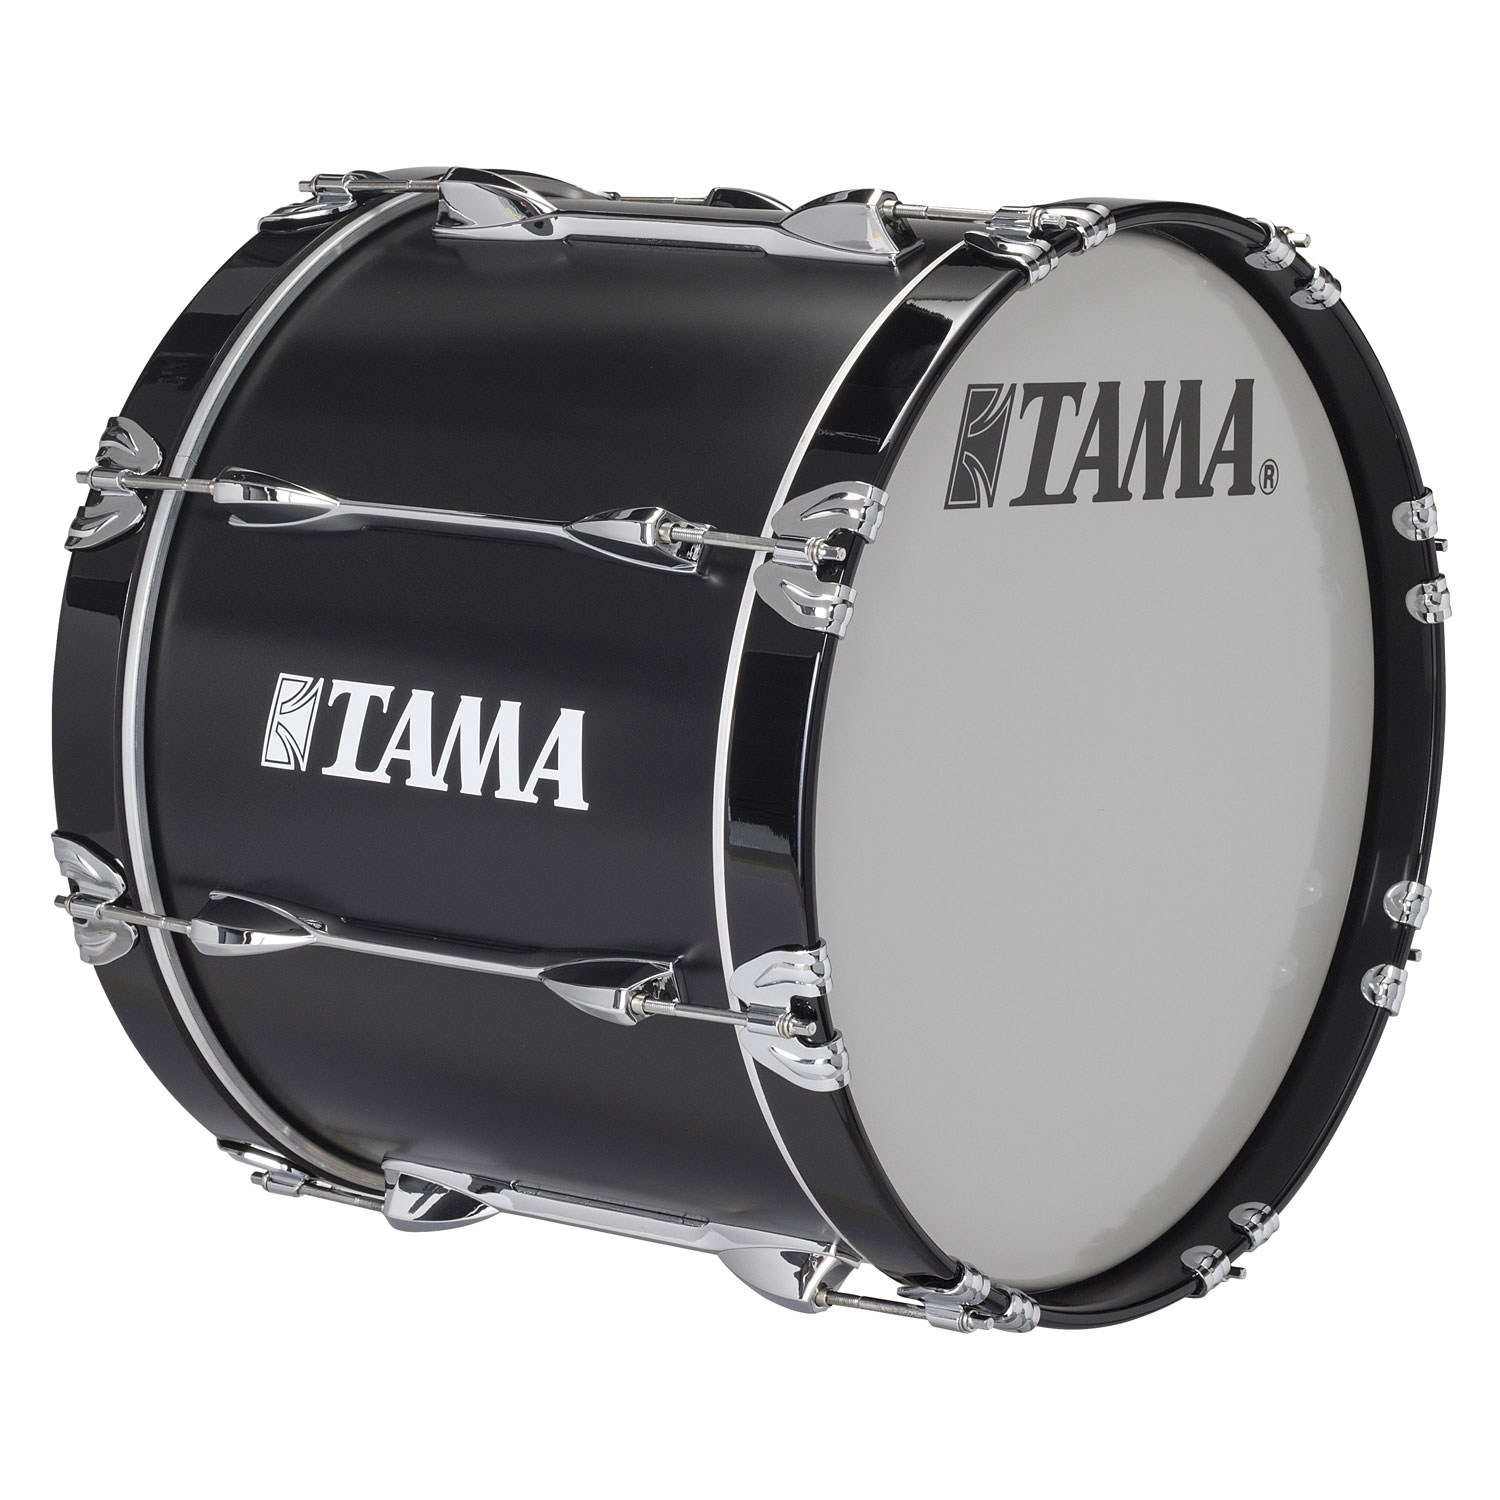 "Tama 24"" StarLight Marching Bass Drum in Satin Black Lacquer"